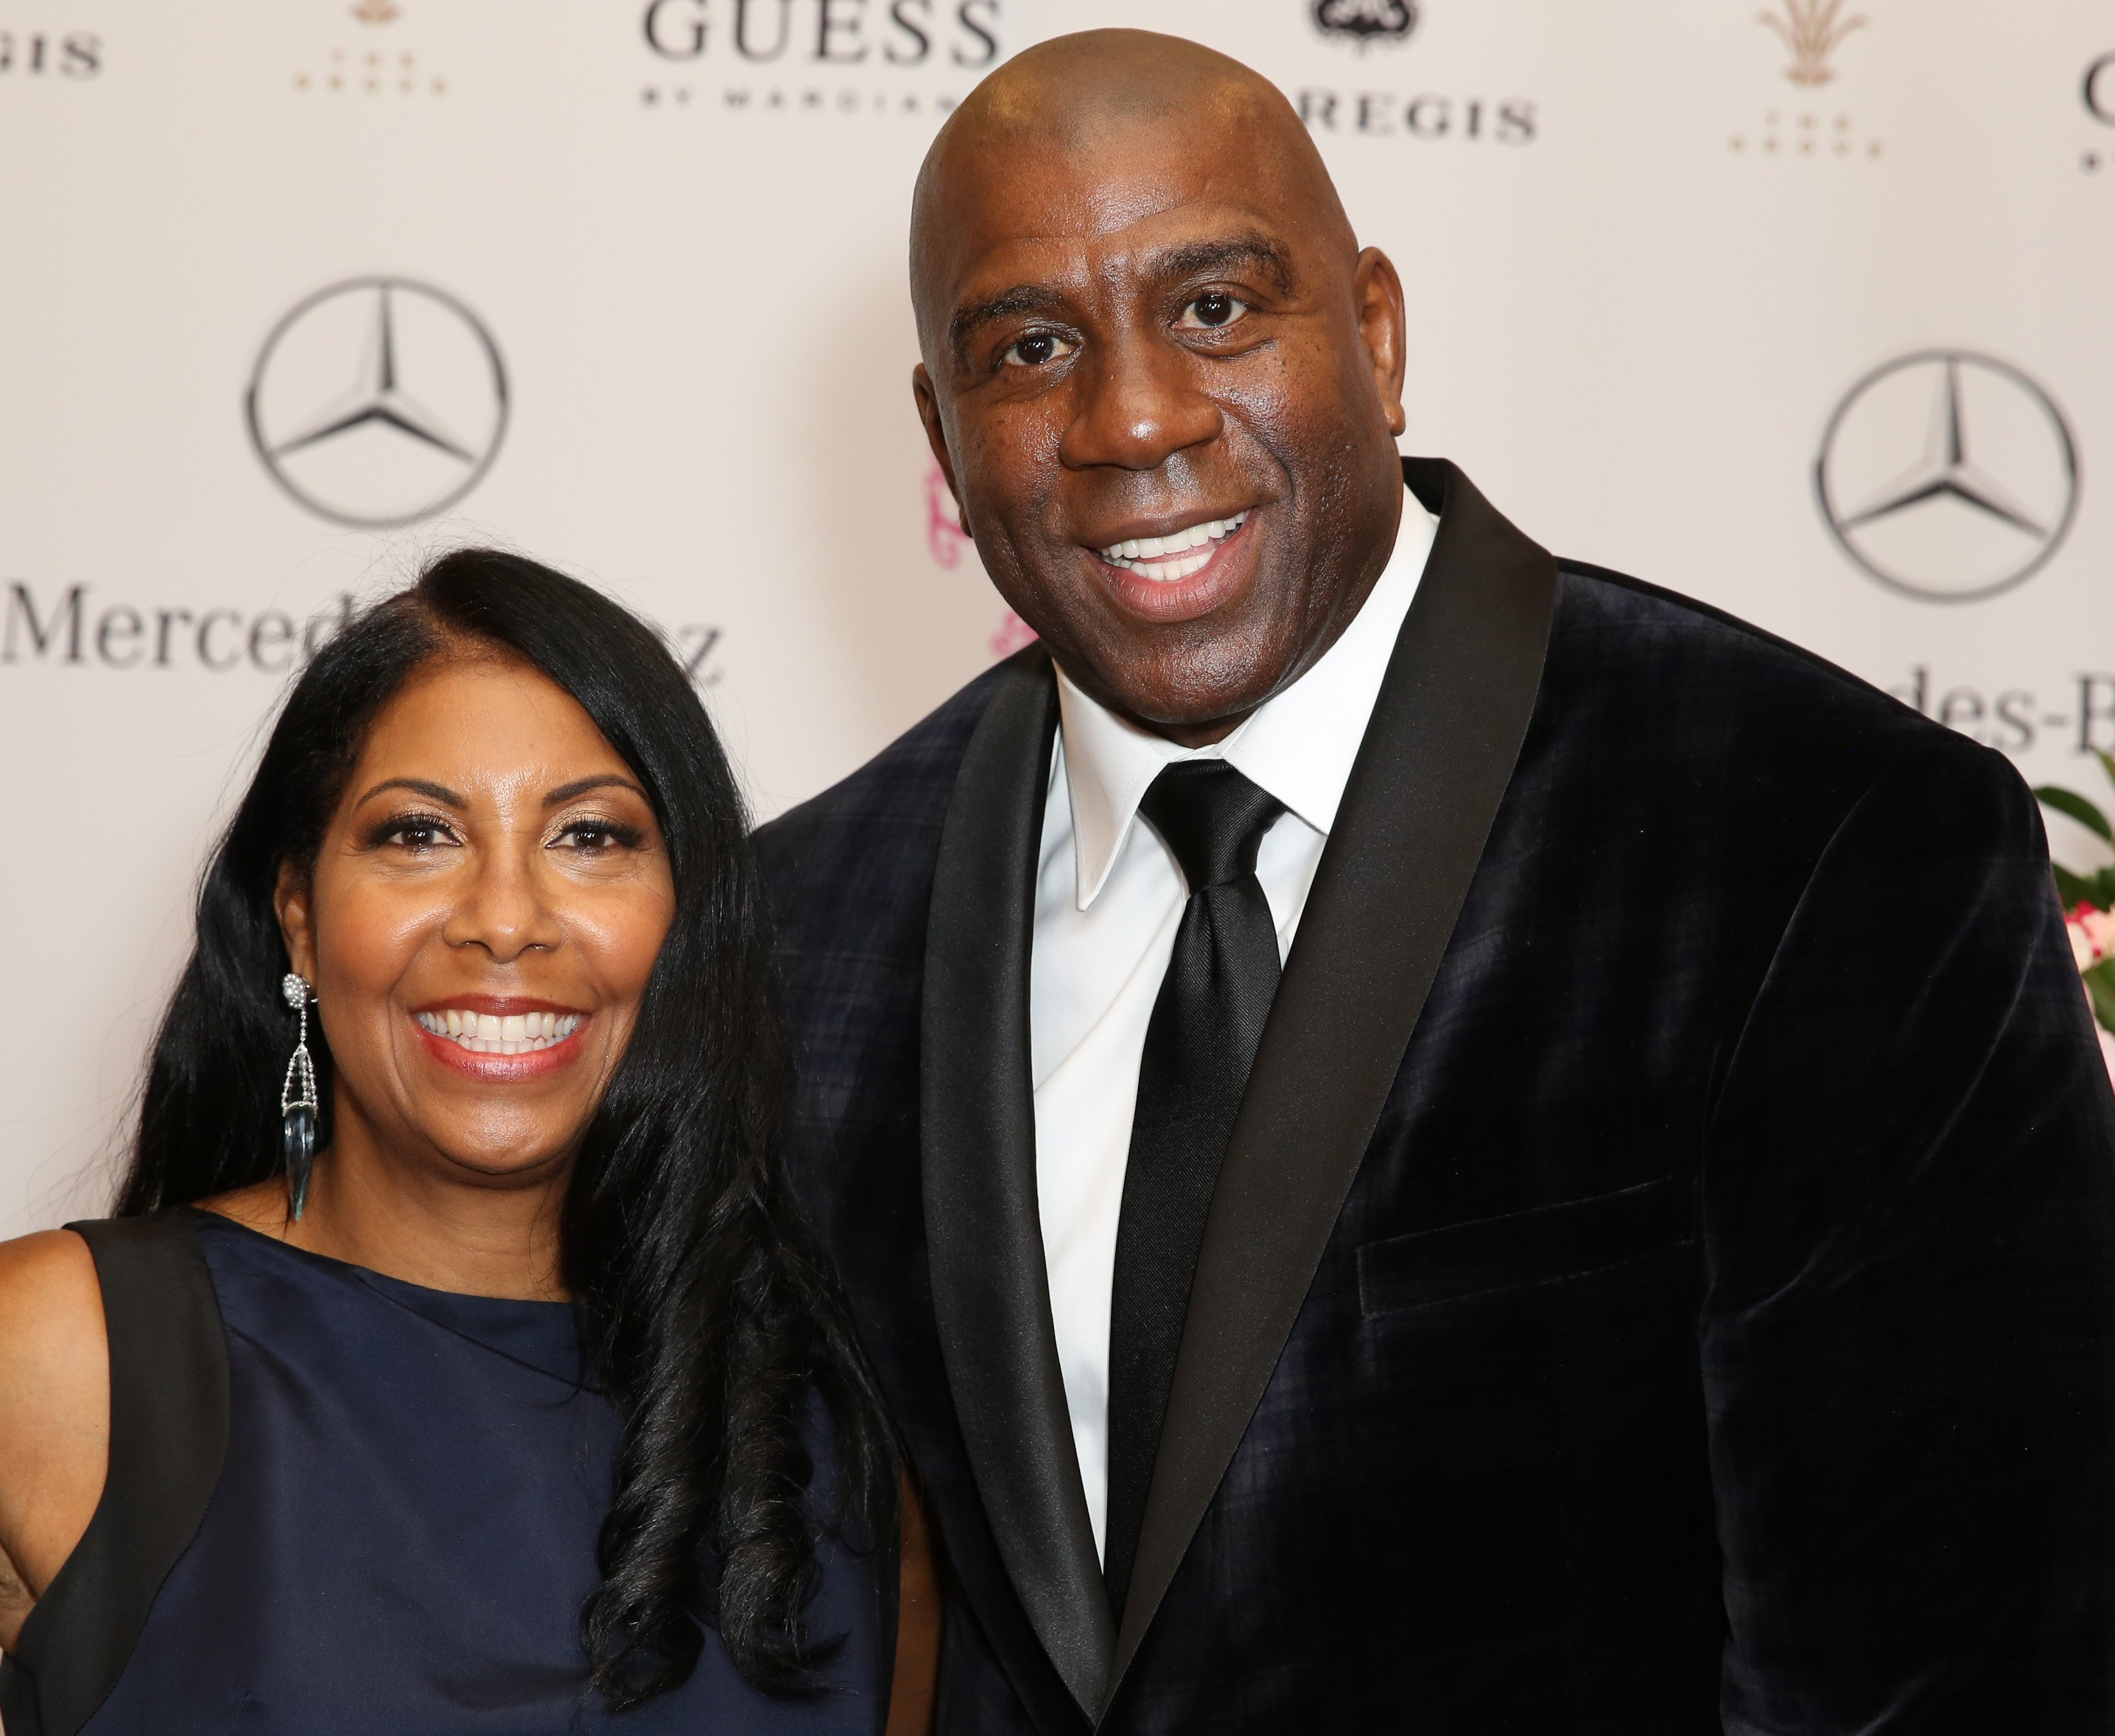 Cookie & Magic Johnson at Mercedes-Benz presents the Carousel of Hope Ball benefitting Barbara Davis Center for Diabetes in Beverly Hills, California on Oct. 11, 2014 | Photo: Getty Images